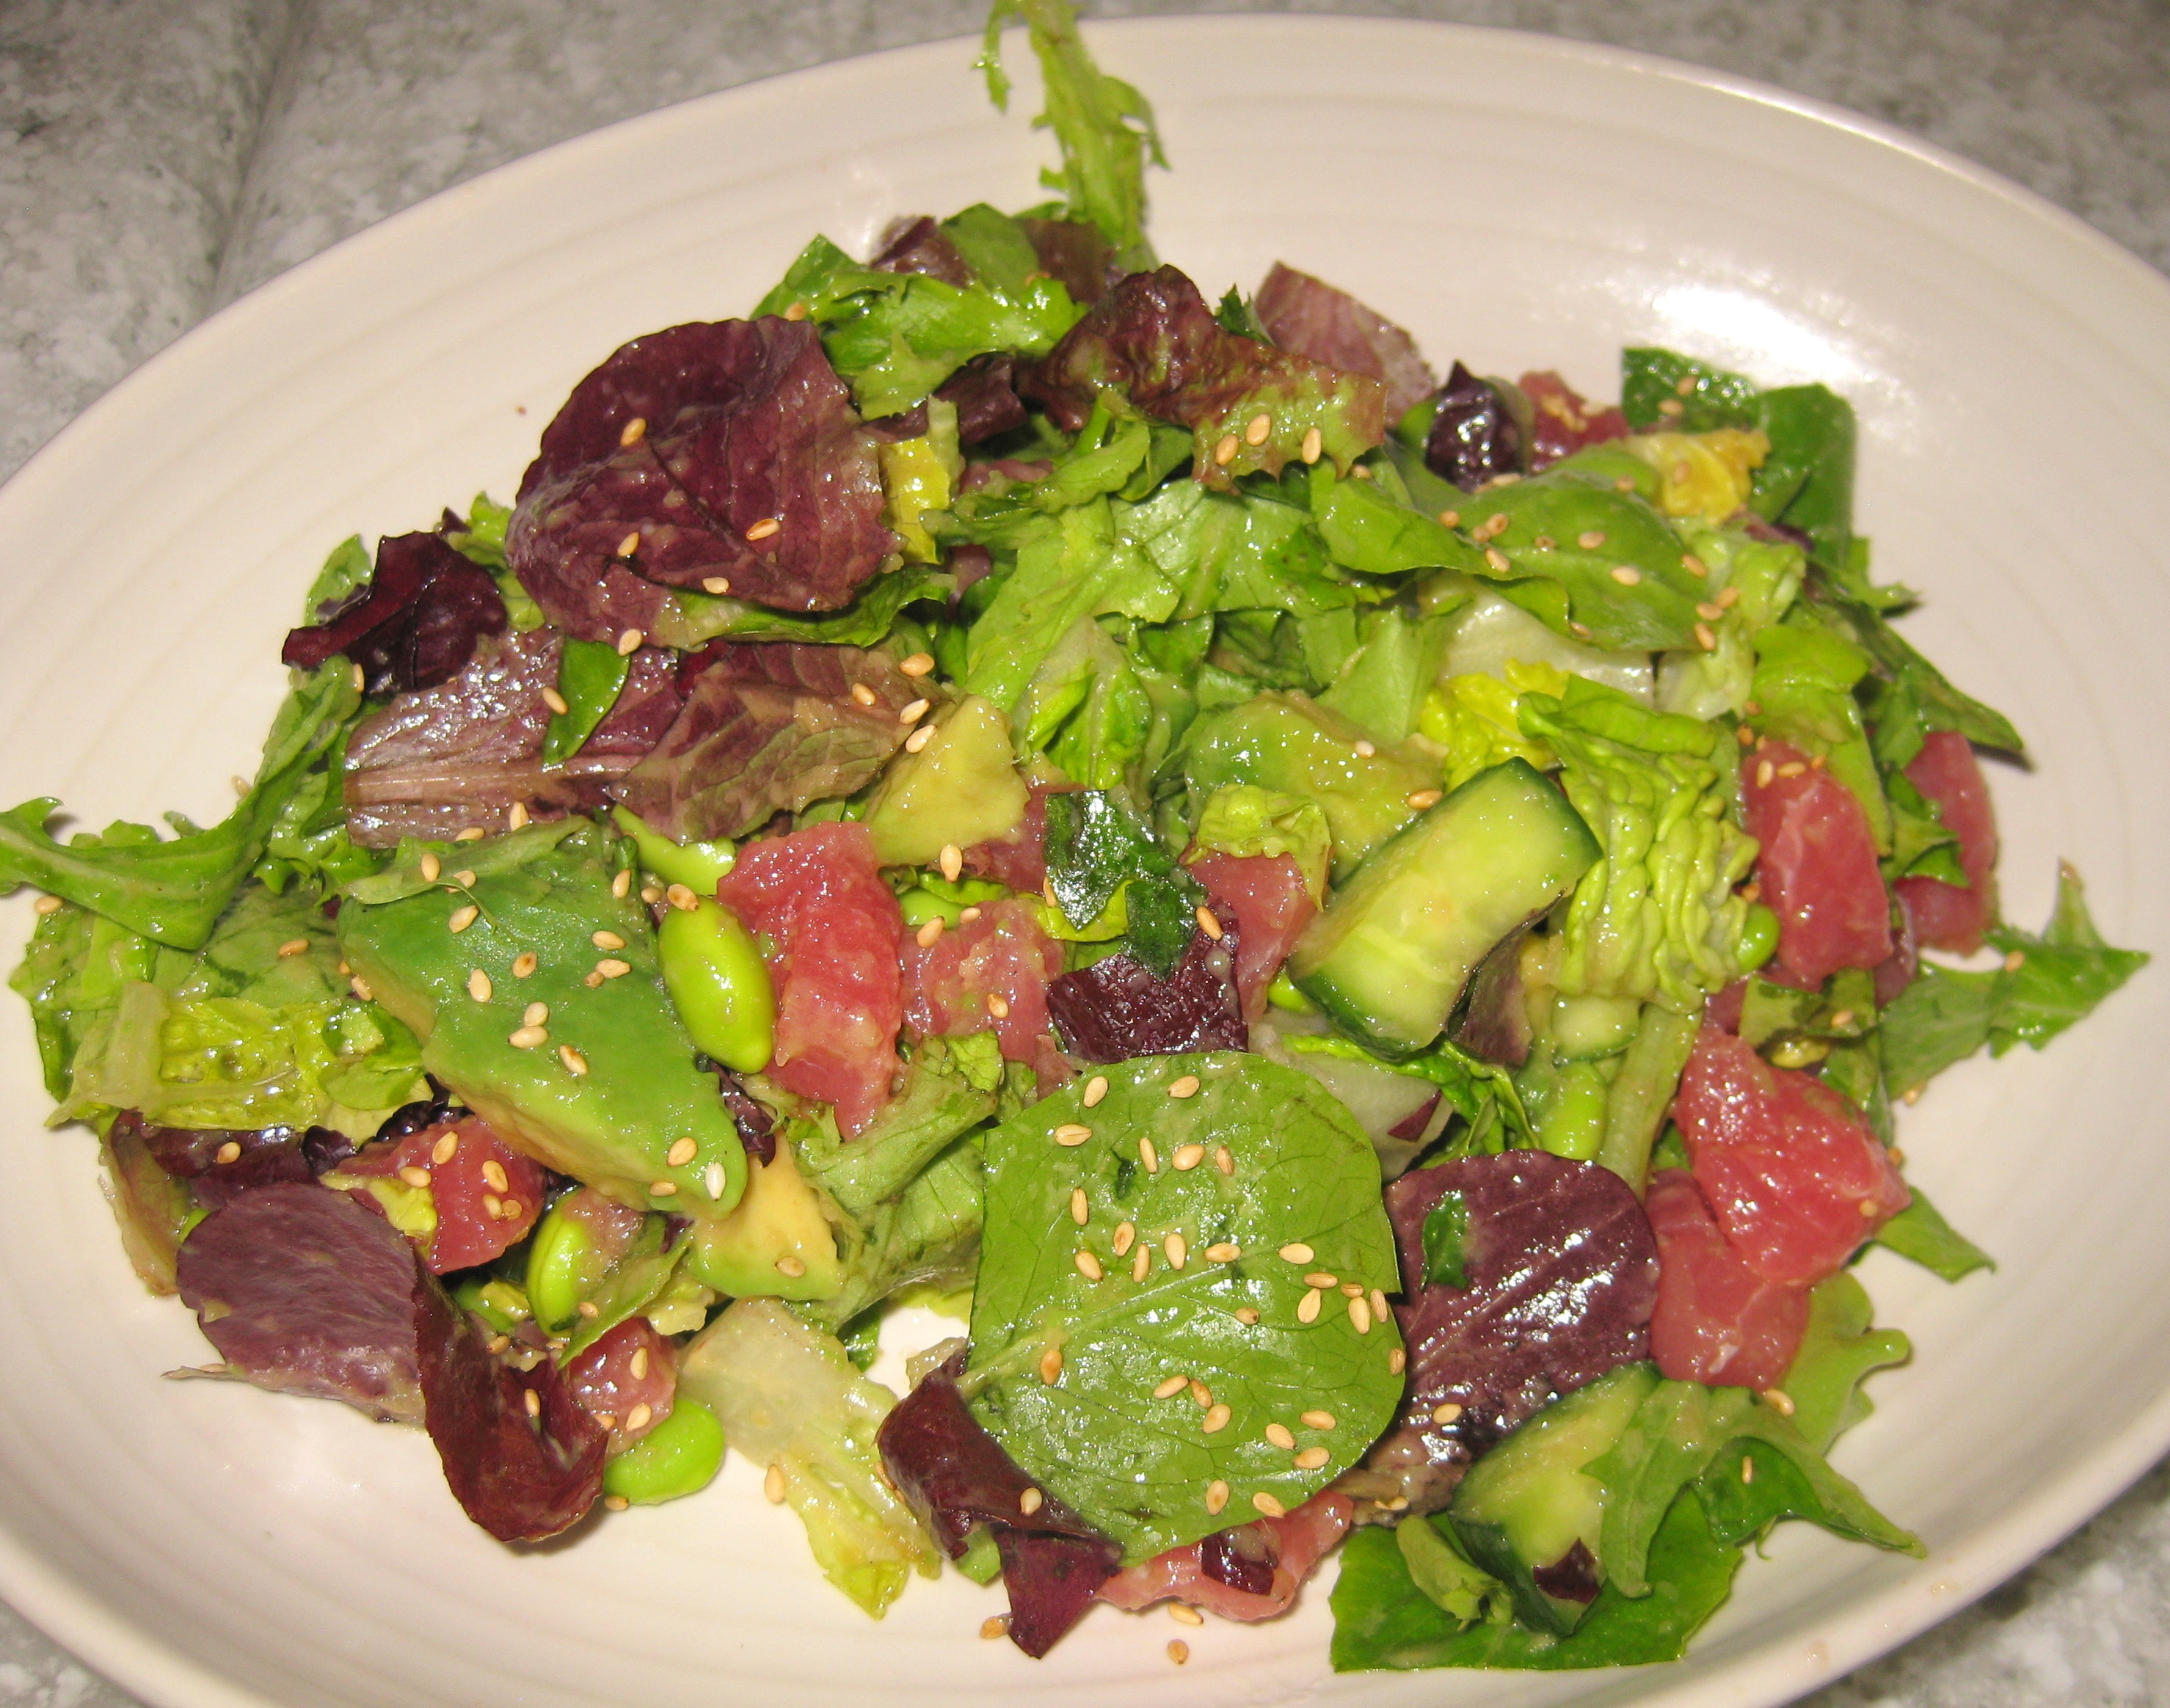 Sashimi Tuna with avocado, cucumber, edamame and ginger | GAYOT's Blog